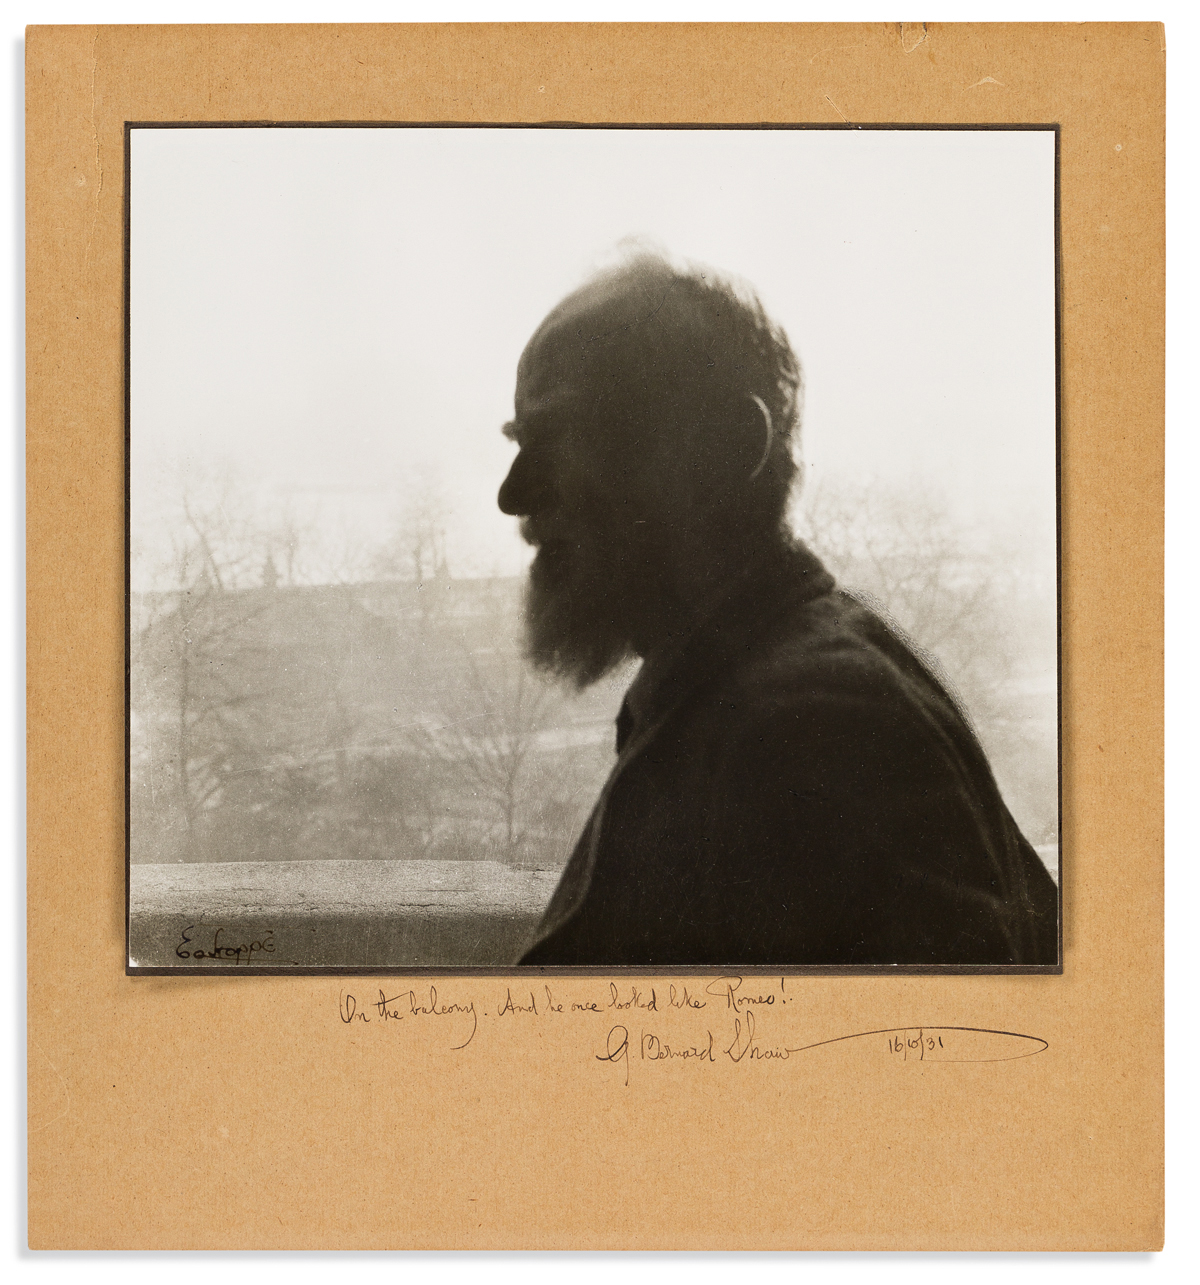 SHAW, GEORGE BERNARD. Photograph Signed and Inscribed, On the balcony. And he once looked like Romeo! / G. Bernard Shaw,